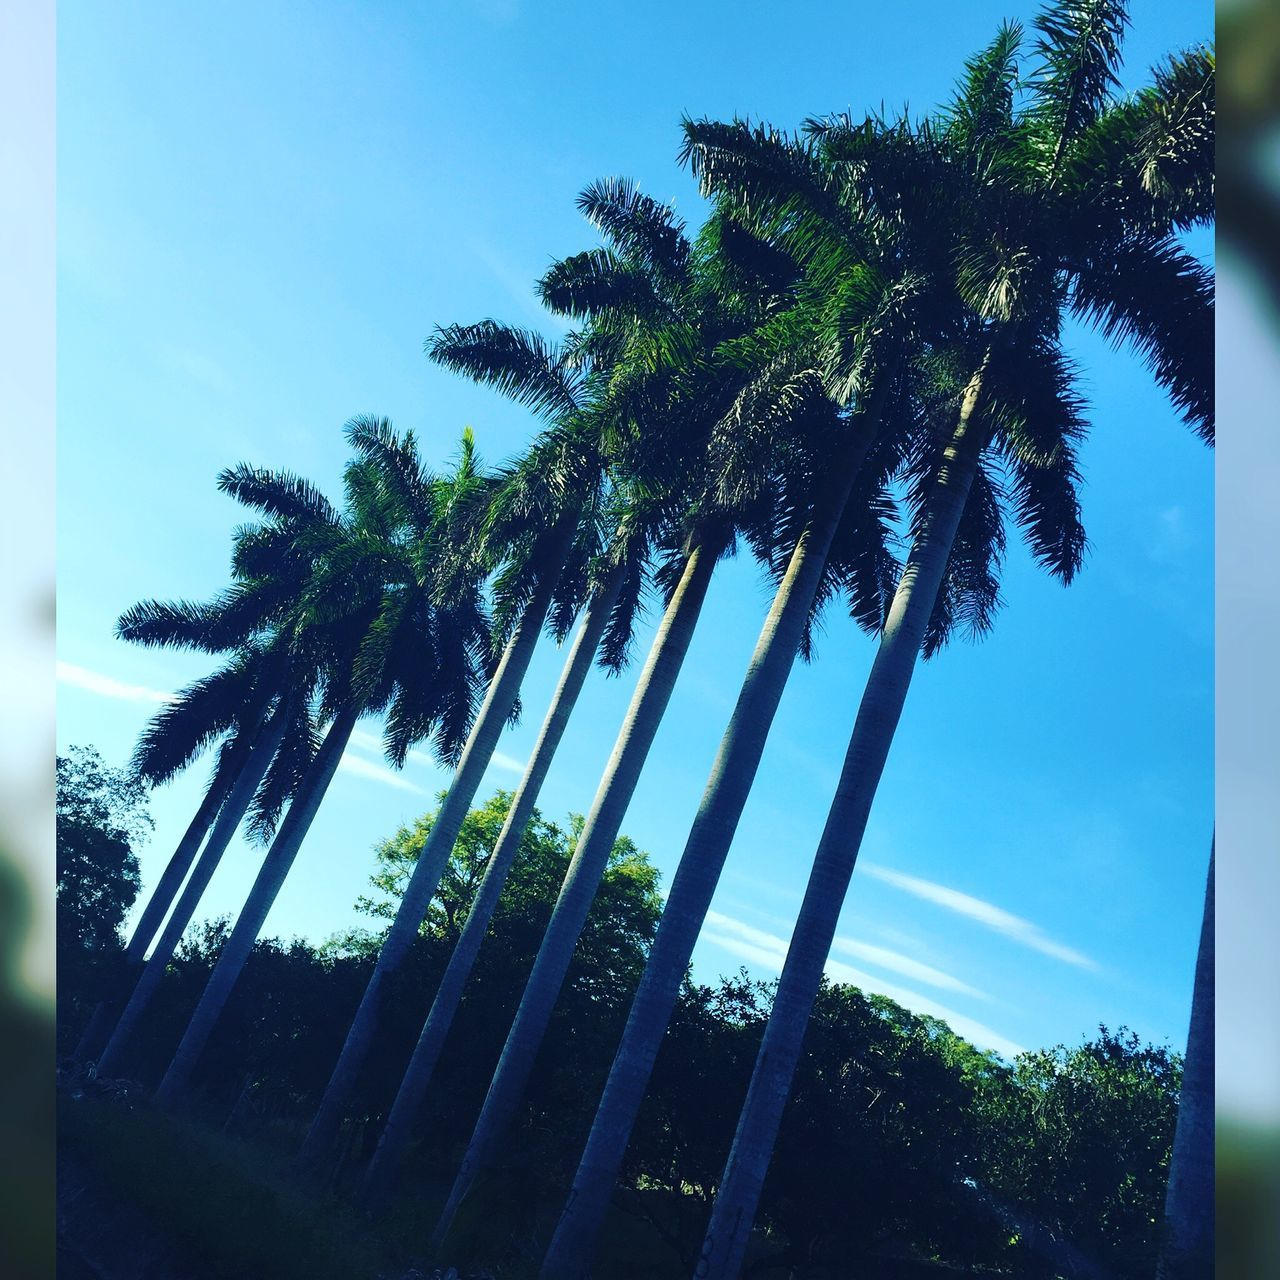 palm tree, tree, sky, tree trunk, growth, low angle view, nature, palm frond, no people, day, beauty in nature, tranquility, tranquil scene, scenics, outdoors, blue, tall, clear sky, close-up